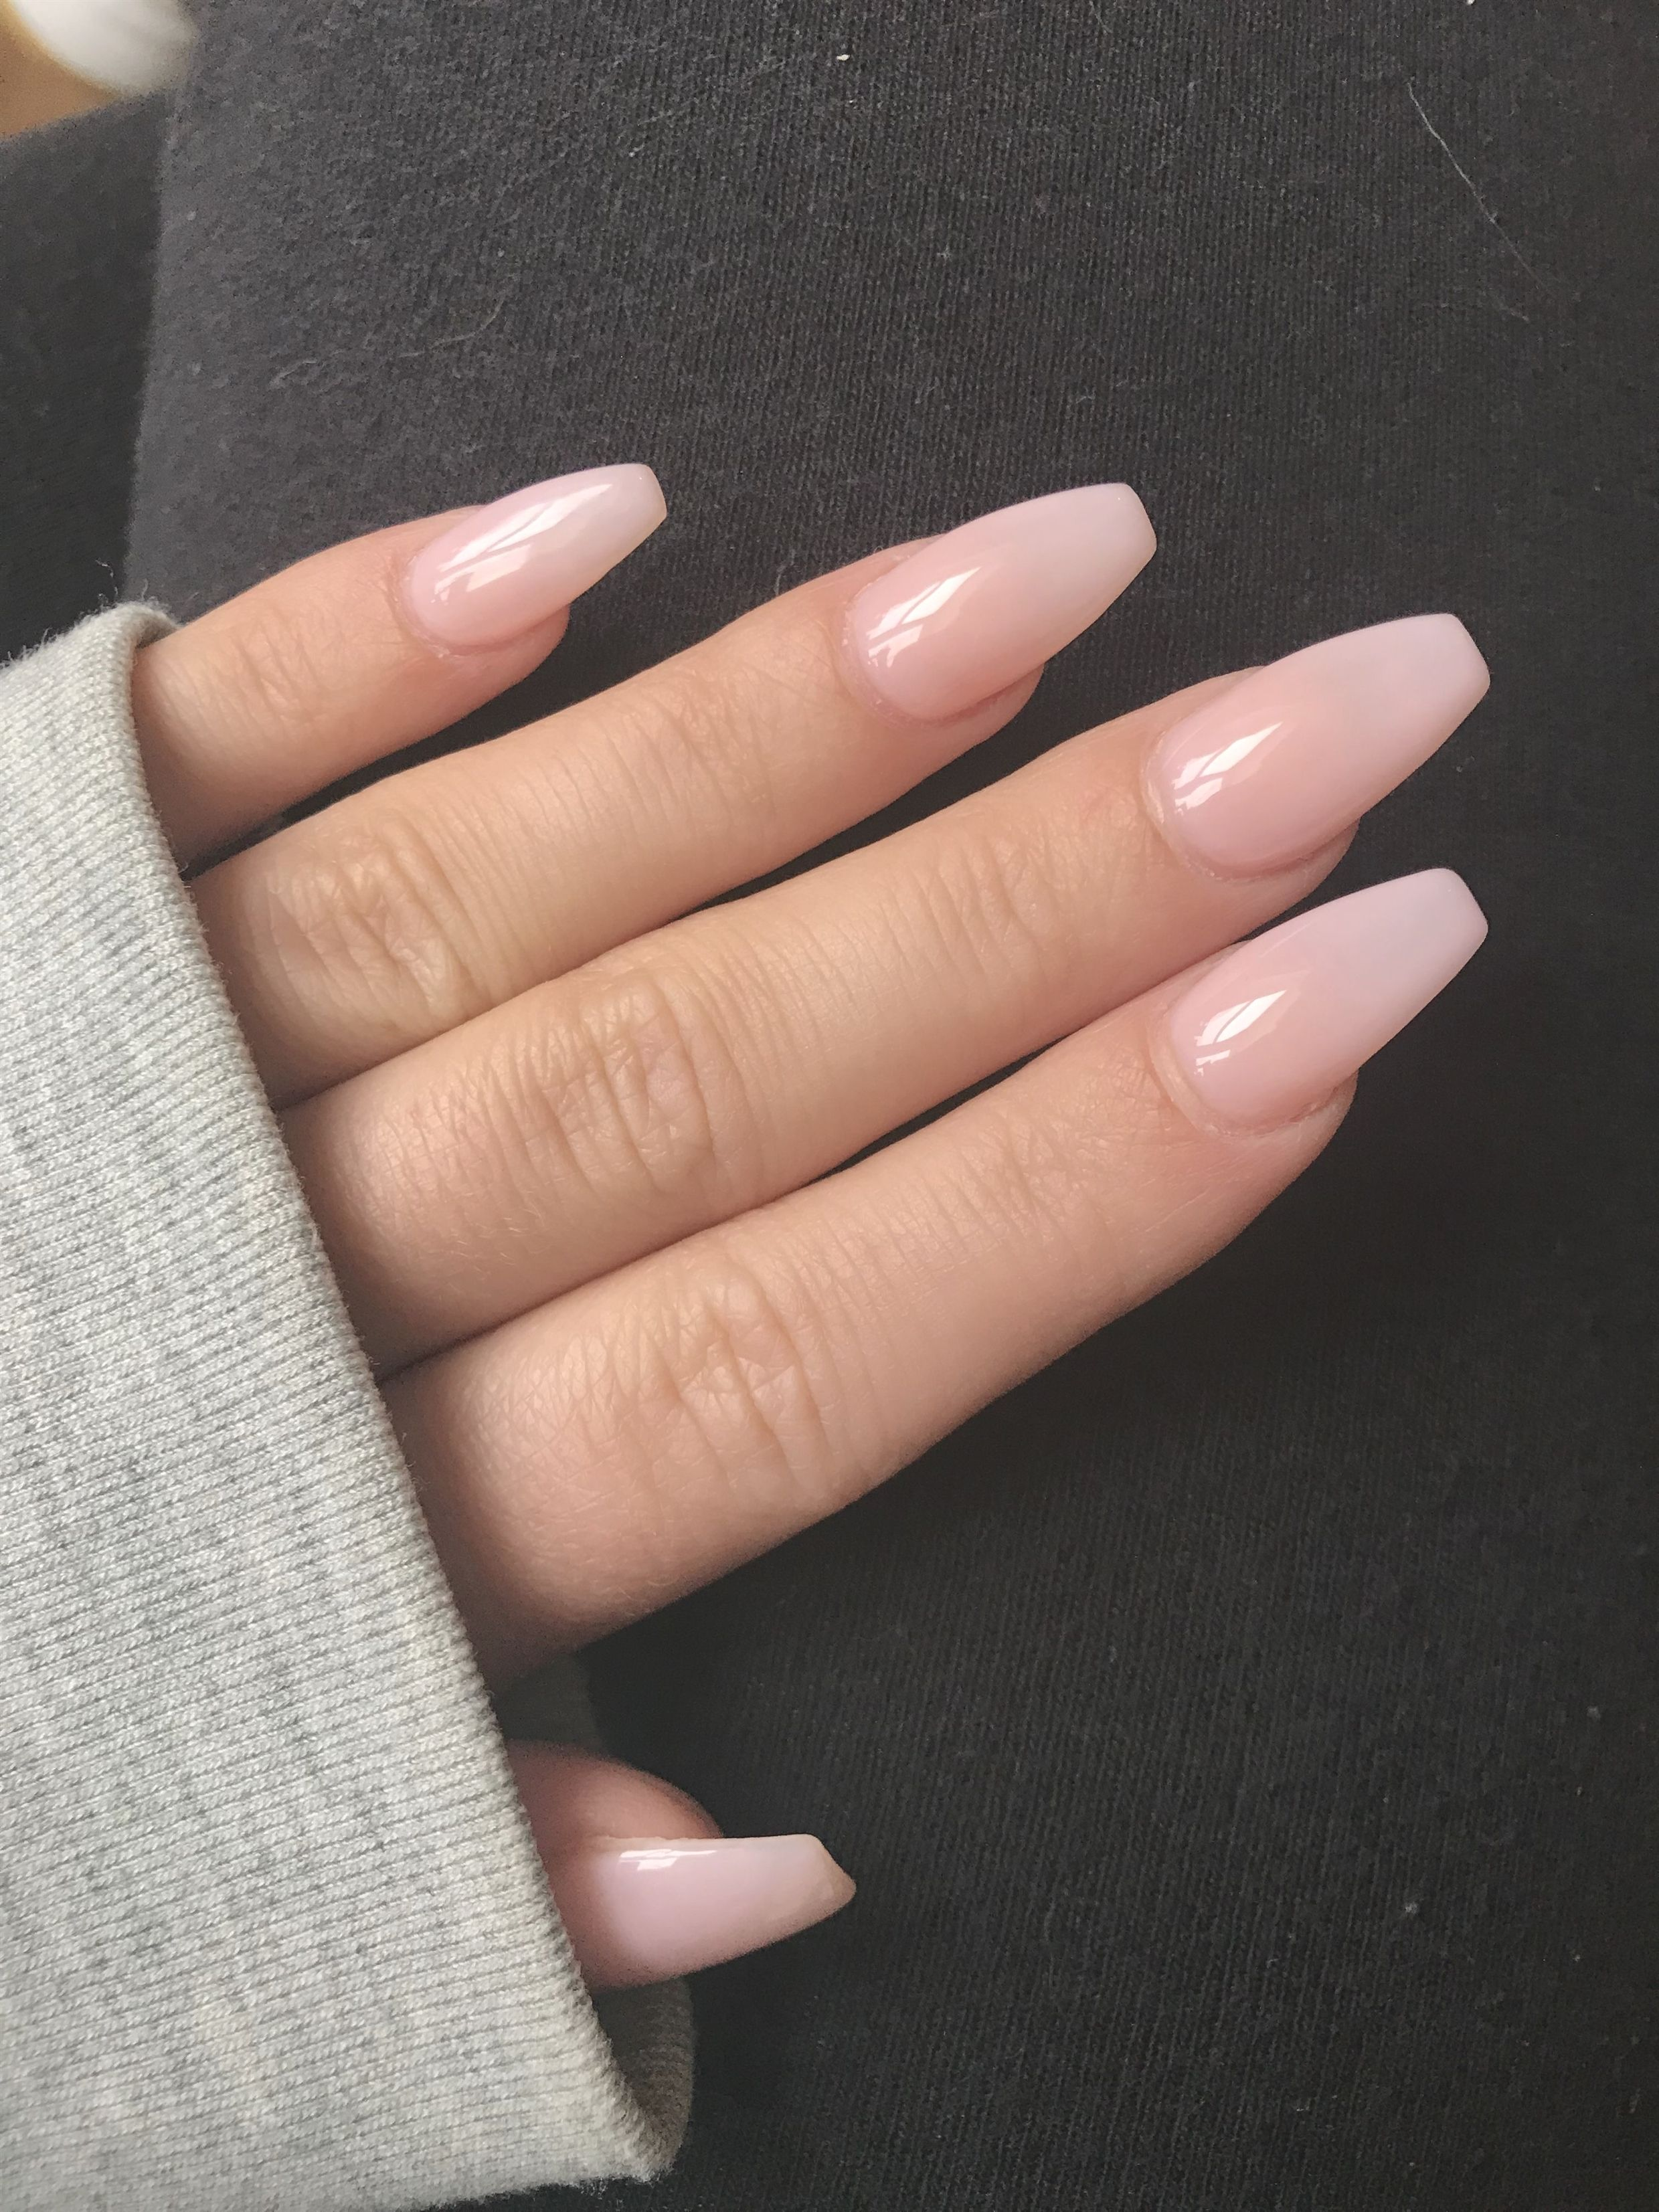 Image Result For Opi Pink Acrylic Coffin Nails Acrylicnails Coffin Nails Long Short Coffin Nails Coffin Nails Designs